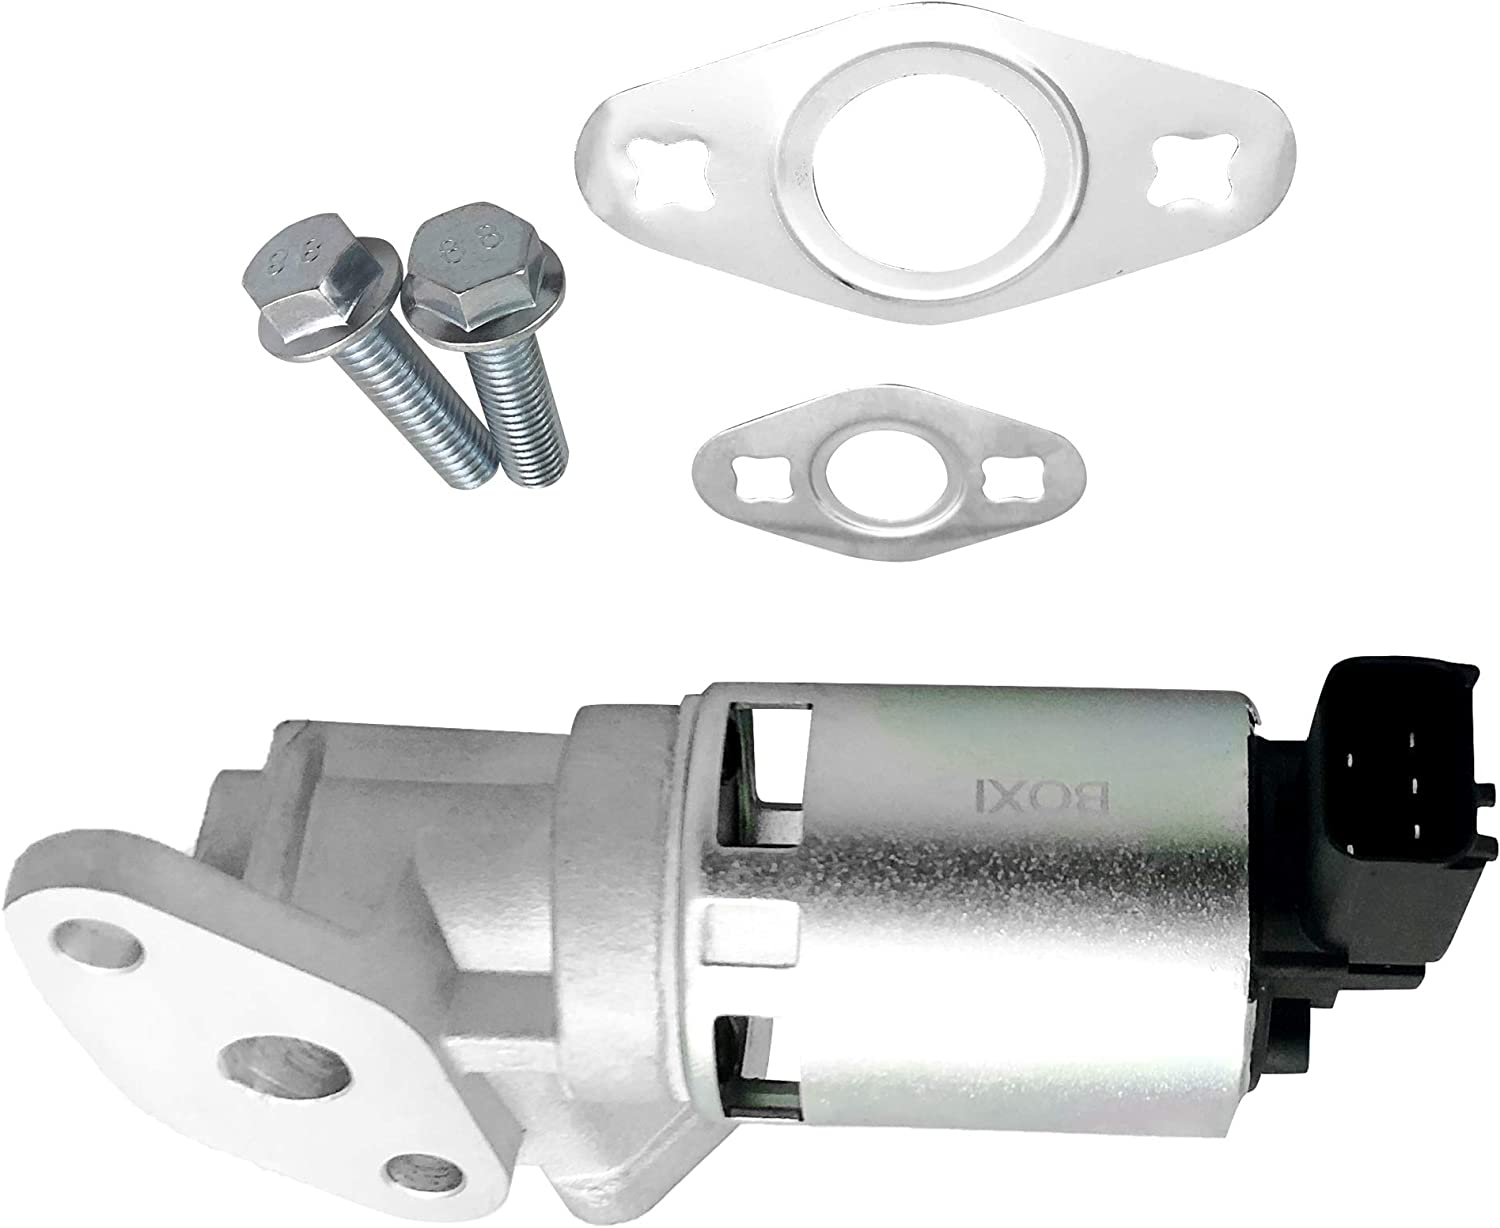 BOXI EGR Exhaust Gas Recirculation Valve Fits Select 2005-2007 Chrysl-er Pacifica, Town & Country/Dod-ge Caravan, Grand Caravan (Replaces:911-203, 4861662AE)